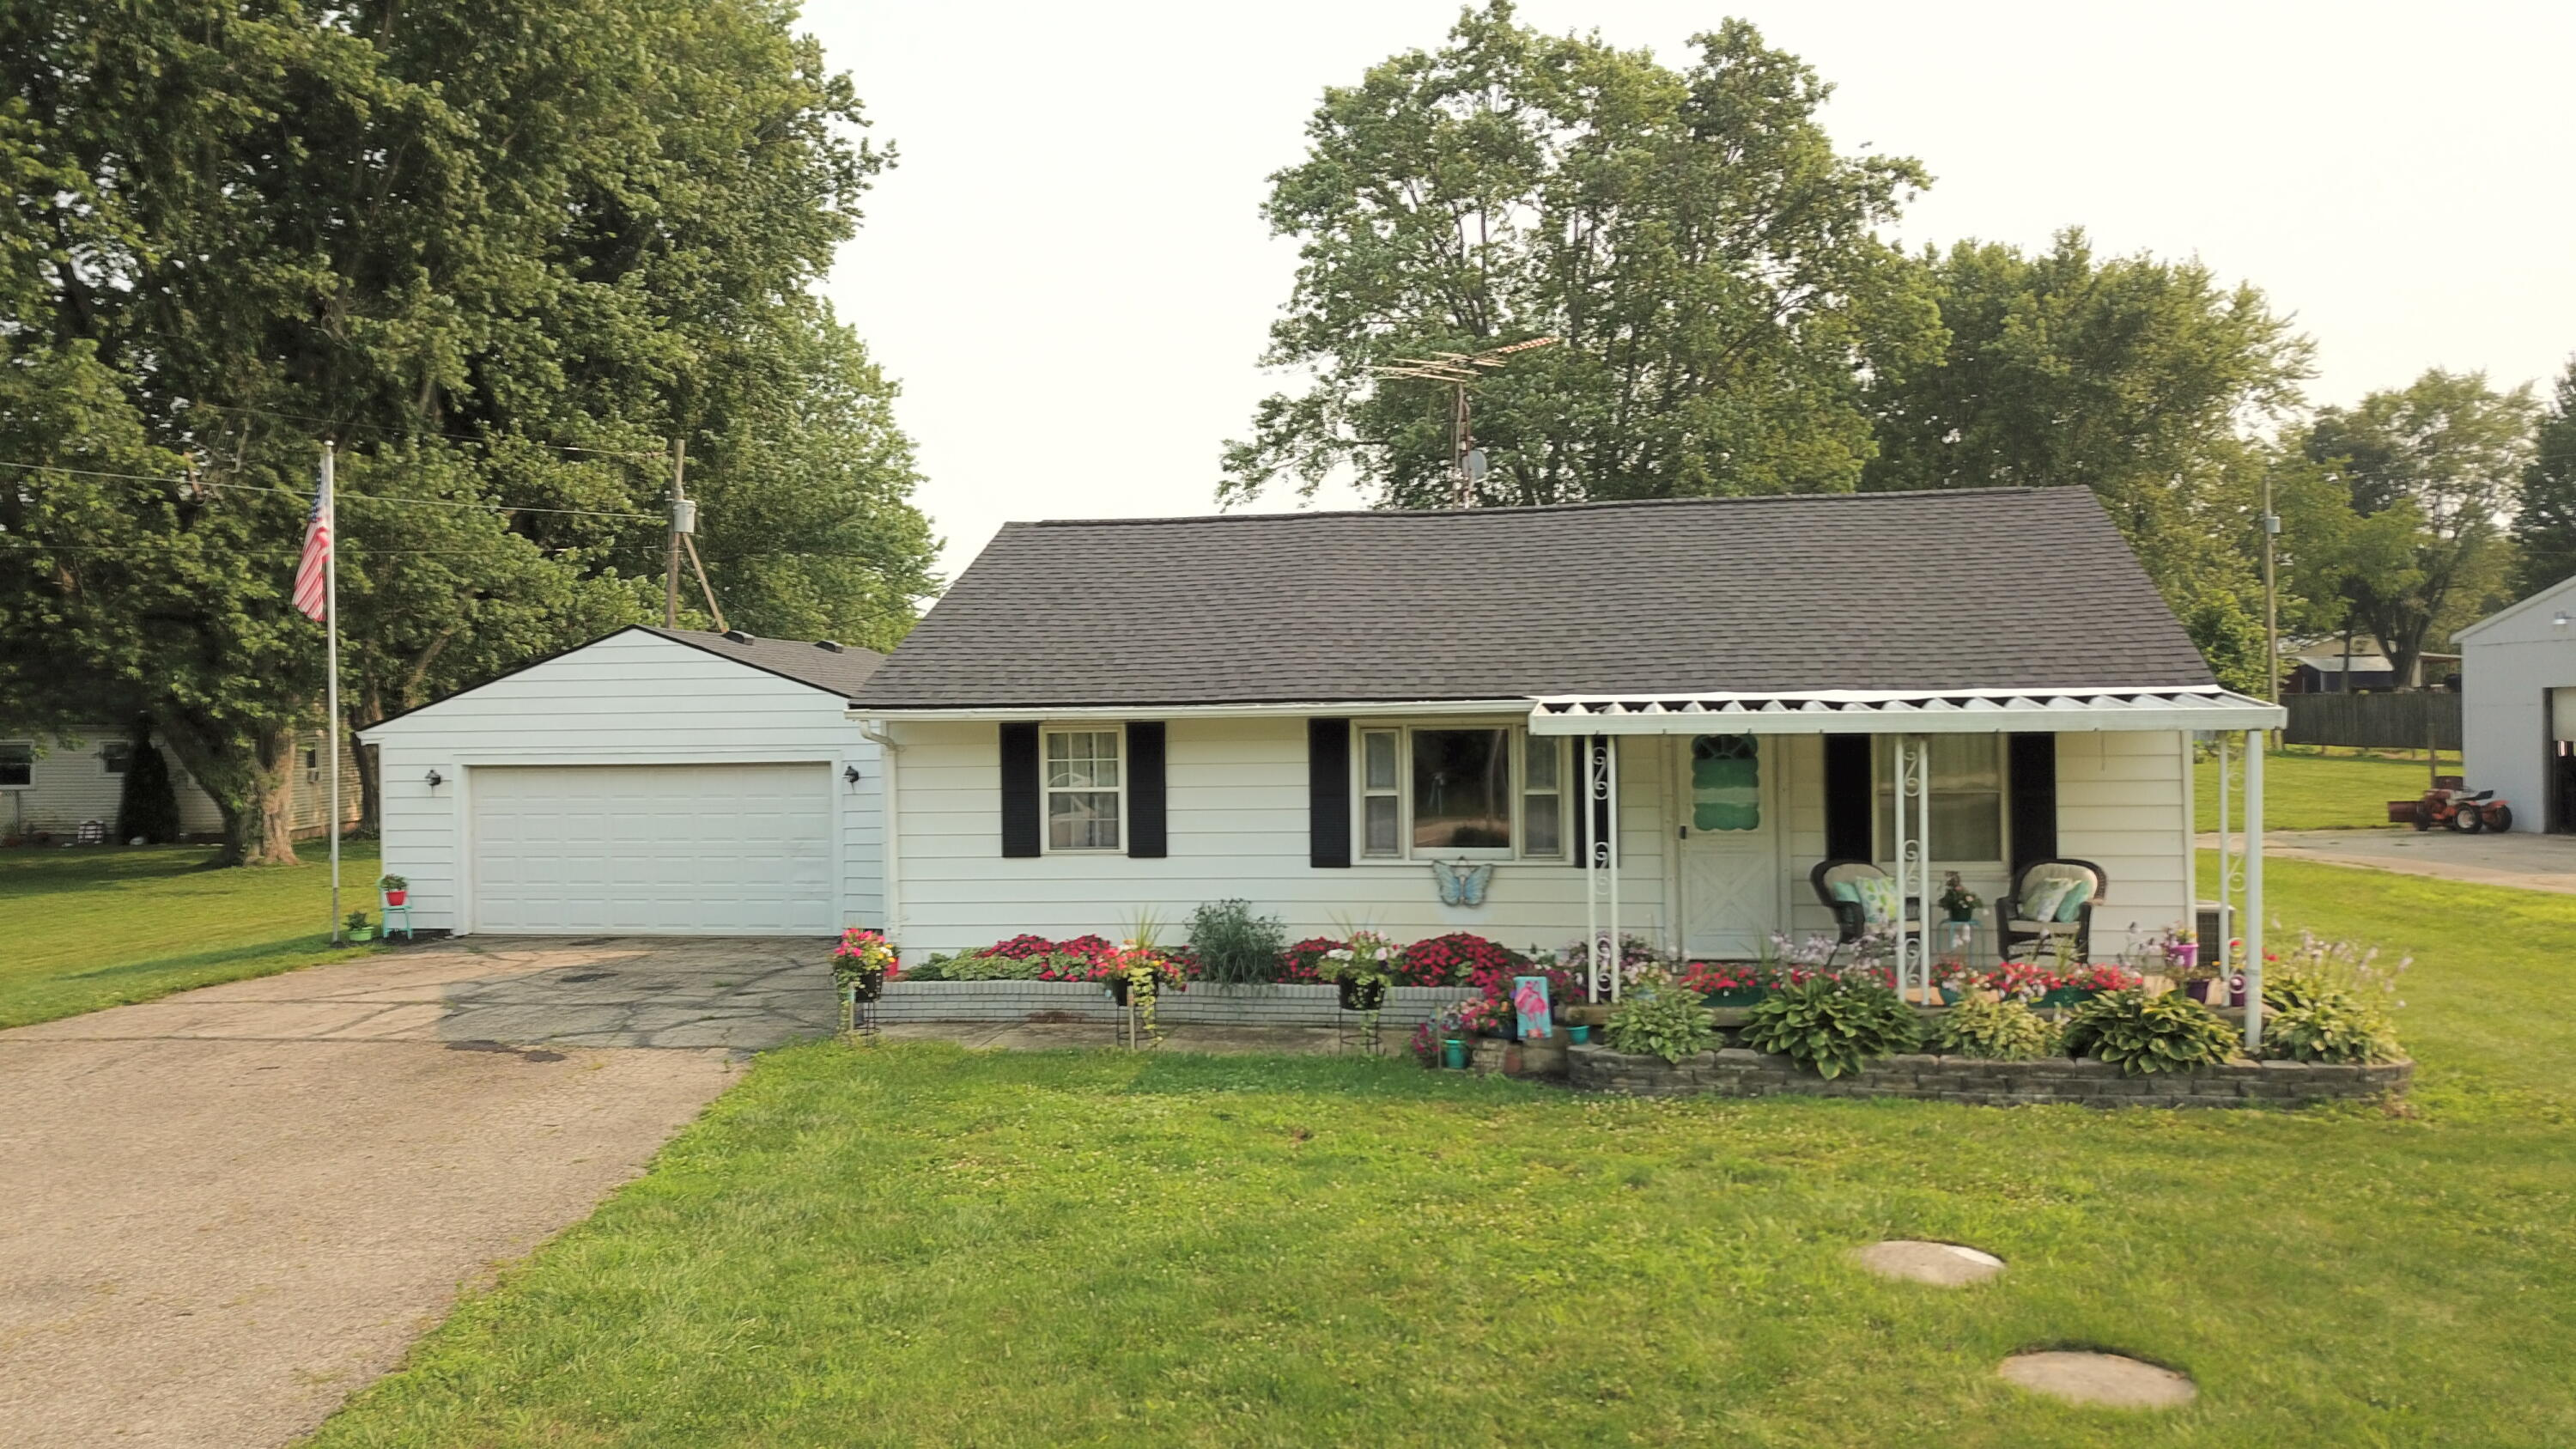 Photo 2 for 6571 Old 70 Rd South Charleston, OH 45368